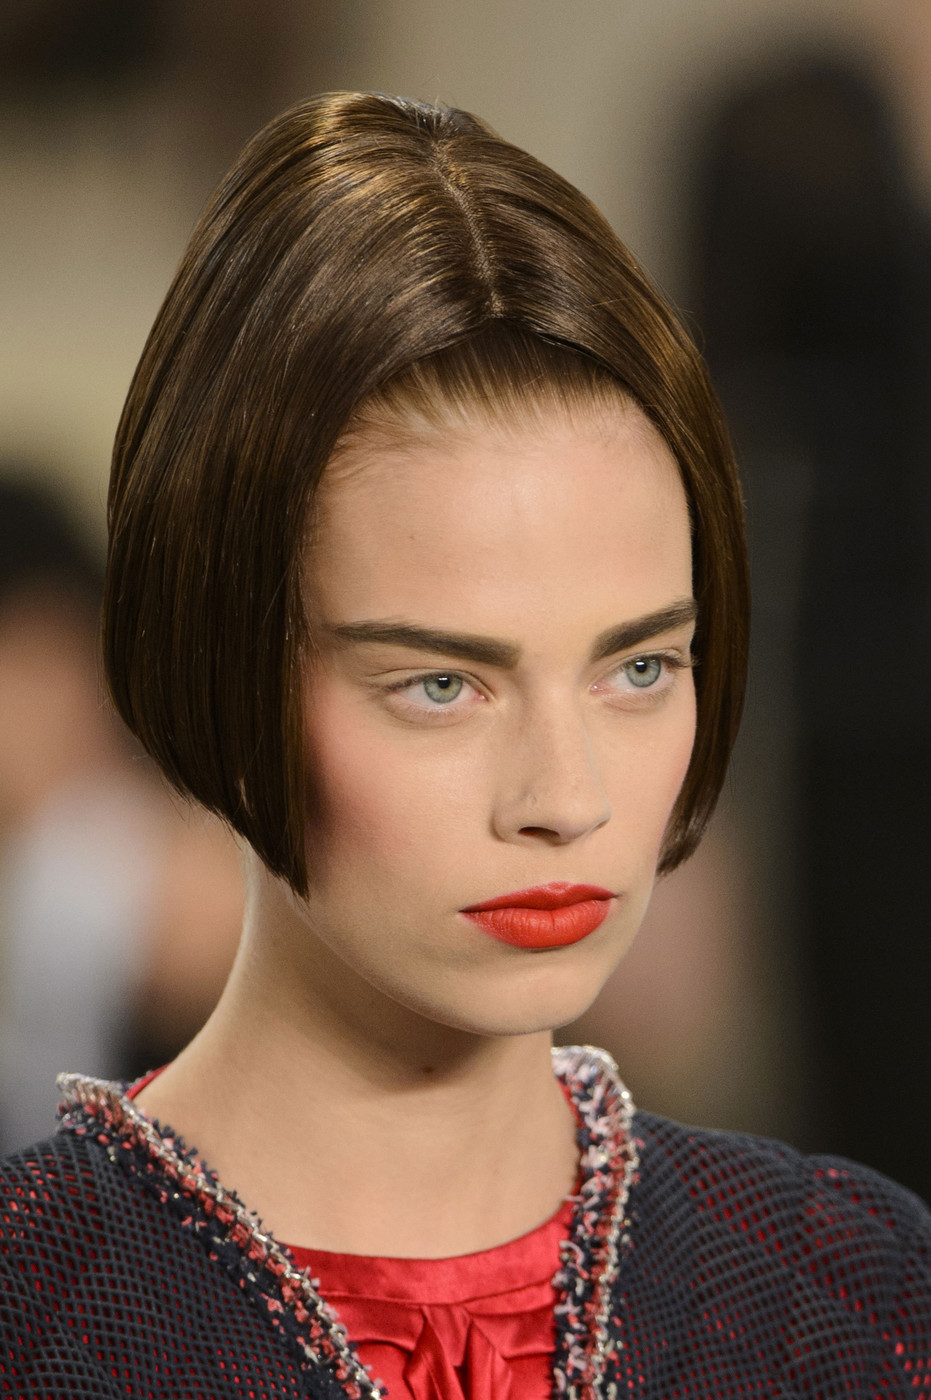 How To Modernise 1970s Beauty Trends